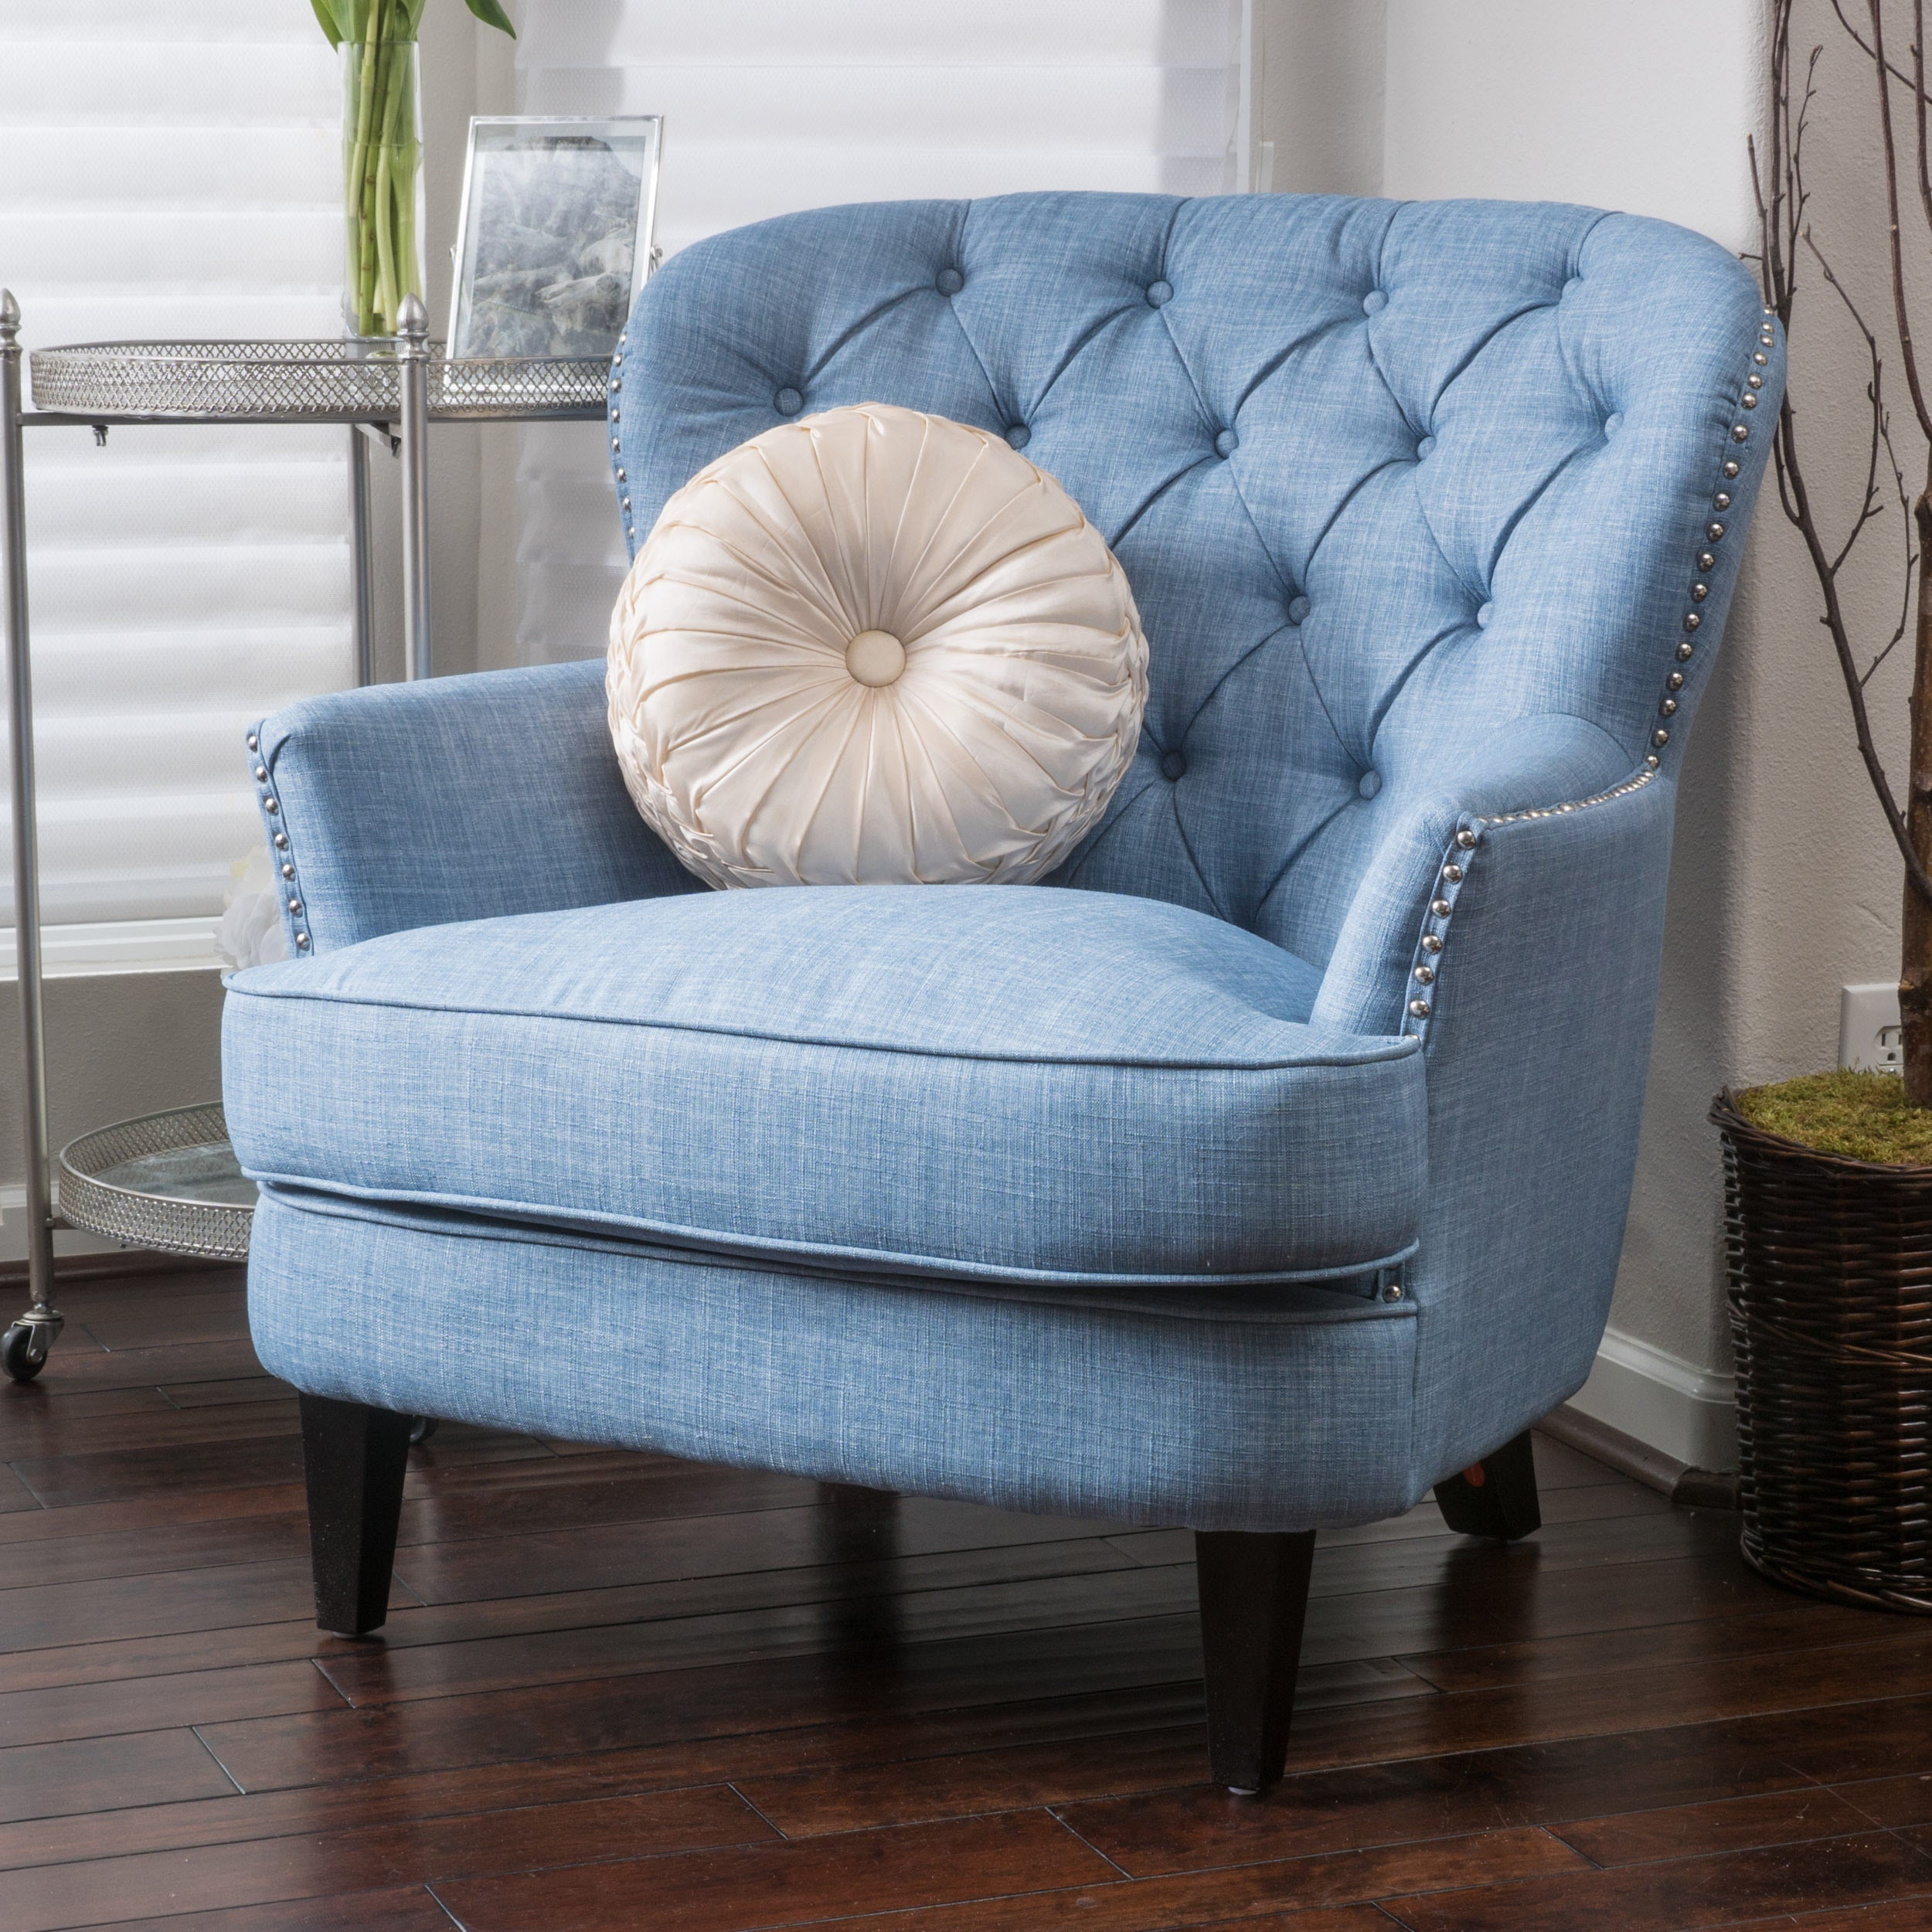 Incroyable Shop Tafton Tufted Oversized Fabric Club Chair By Christopher Knight Home    On Sale   Free Shipping Today   Overstock.com   6201477